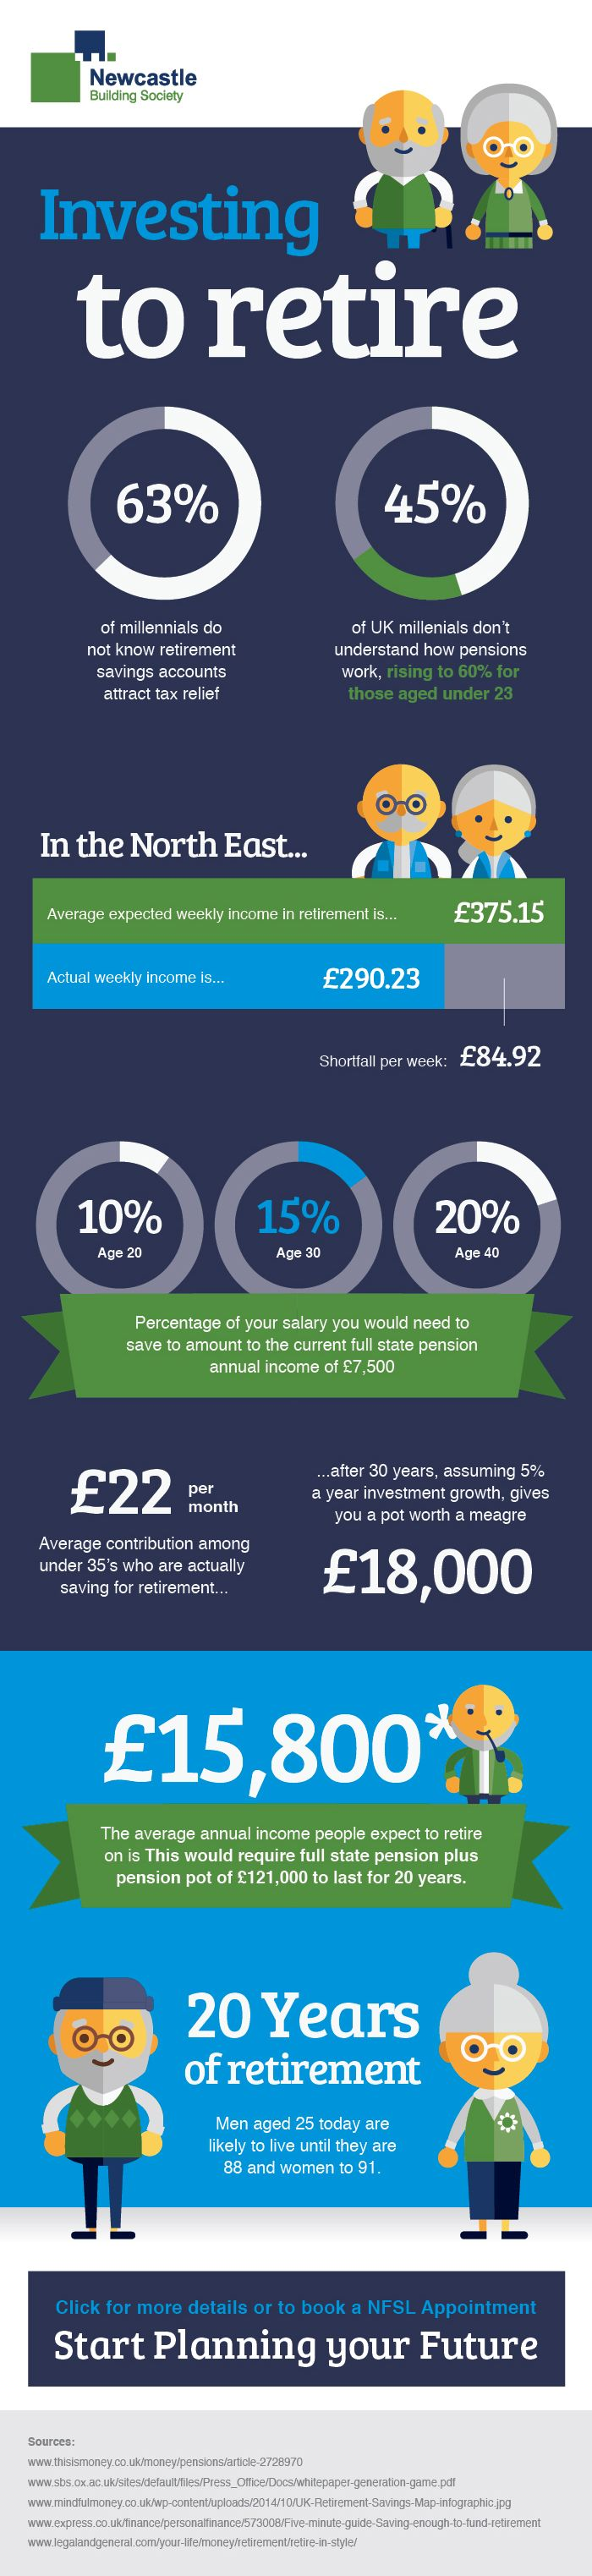 Investing to Retire #infographic